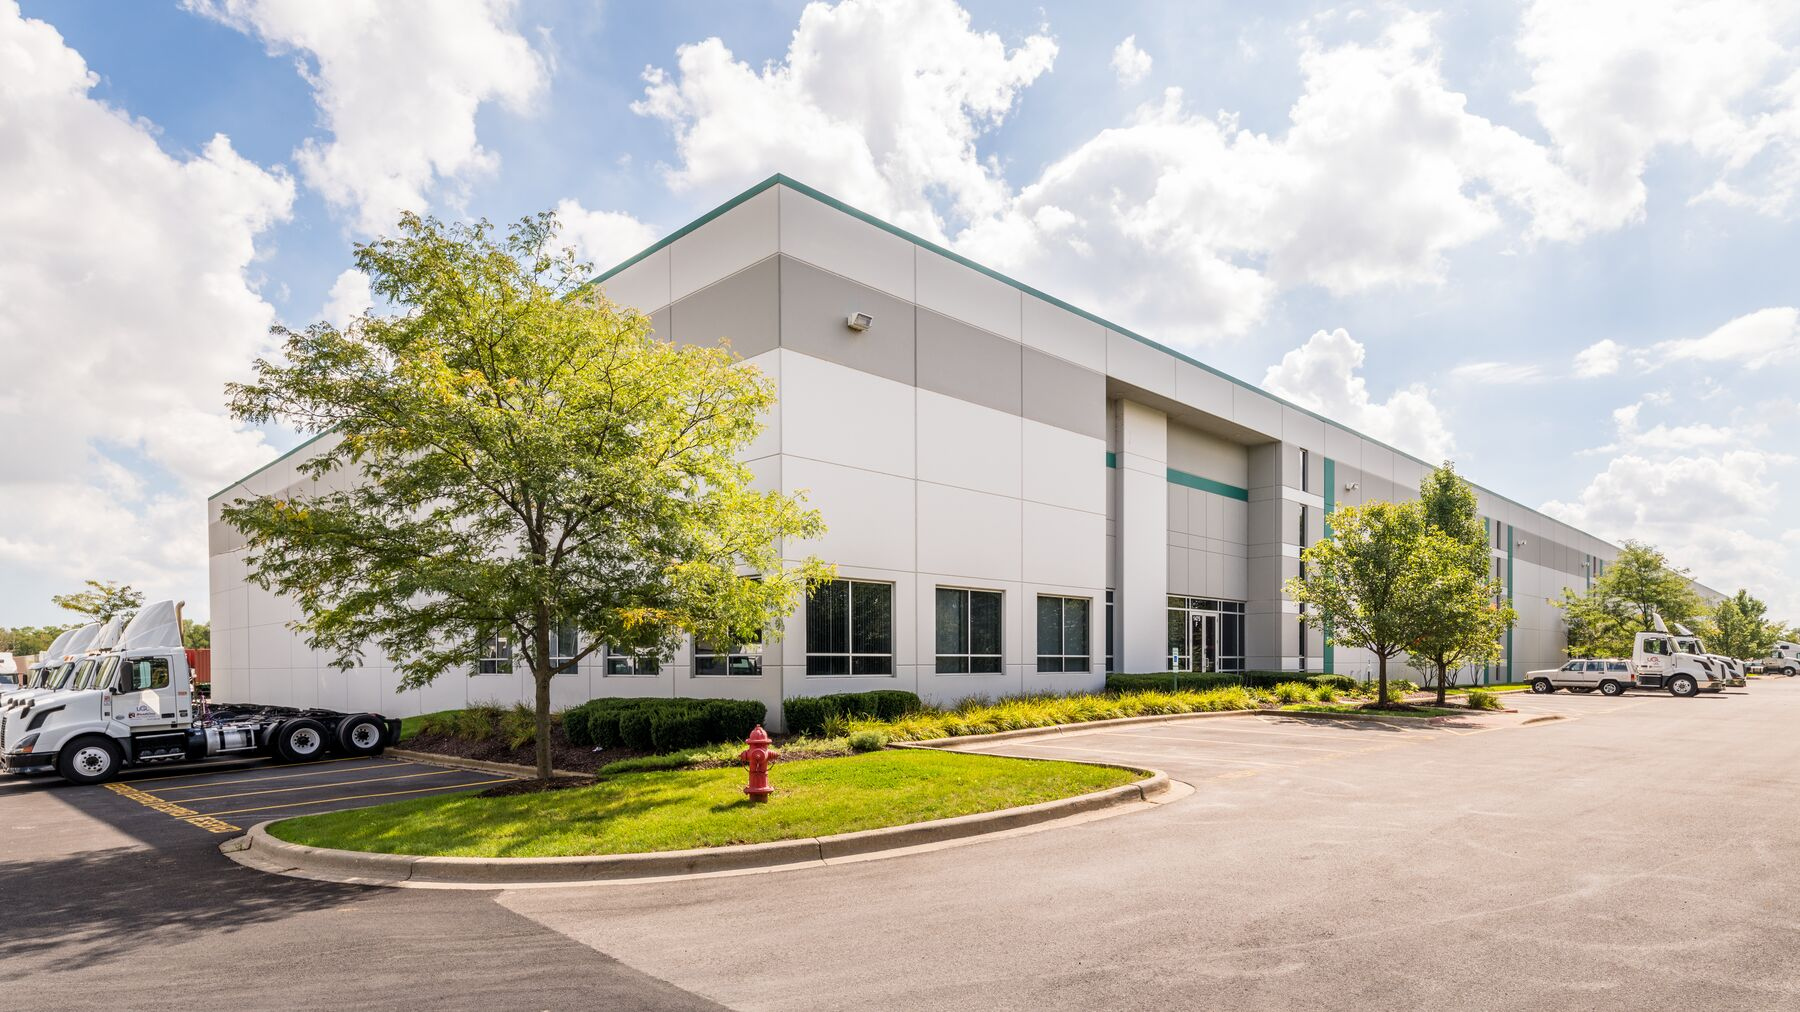 DPM-Prologis-Itasca-1475-Thorndale-Avenue_Image.tif